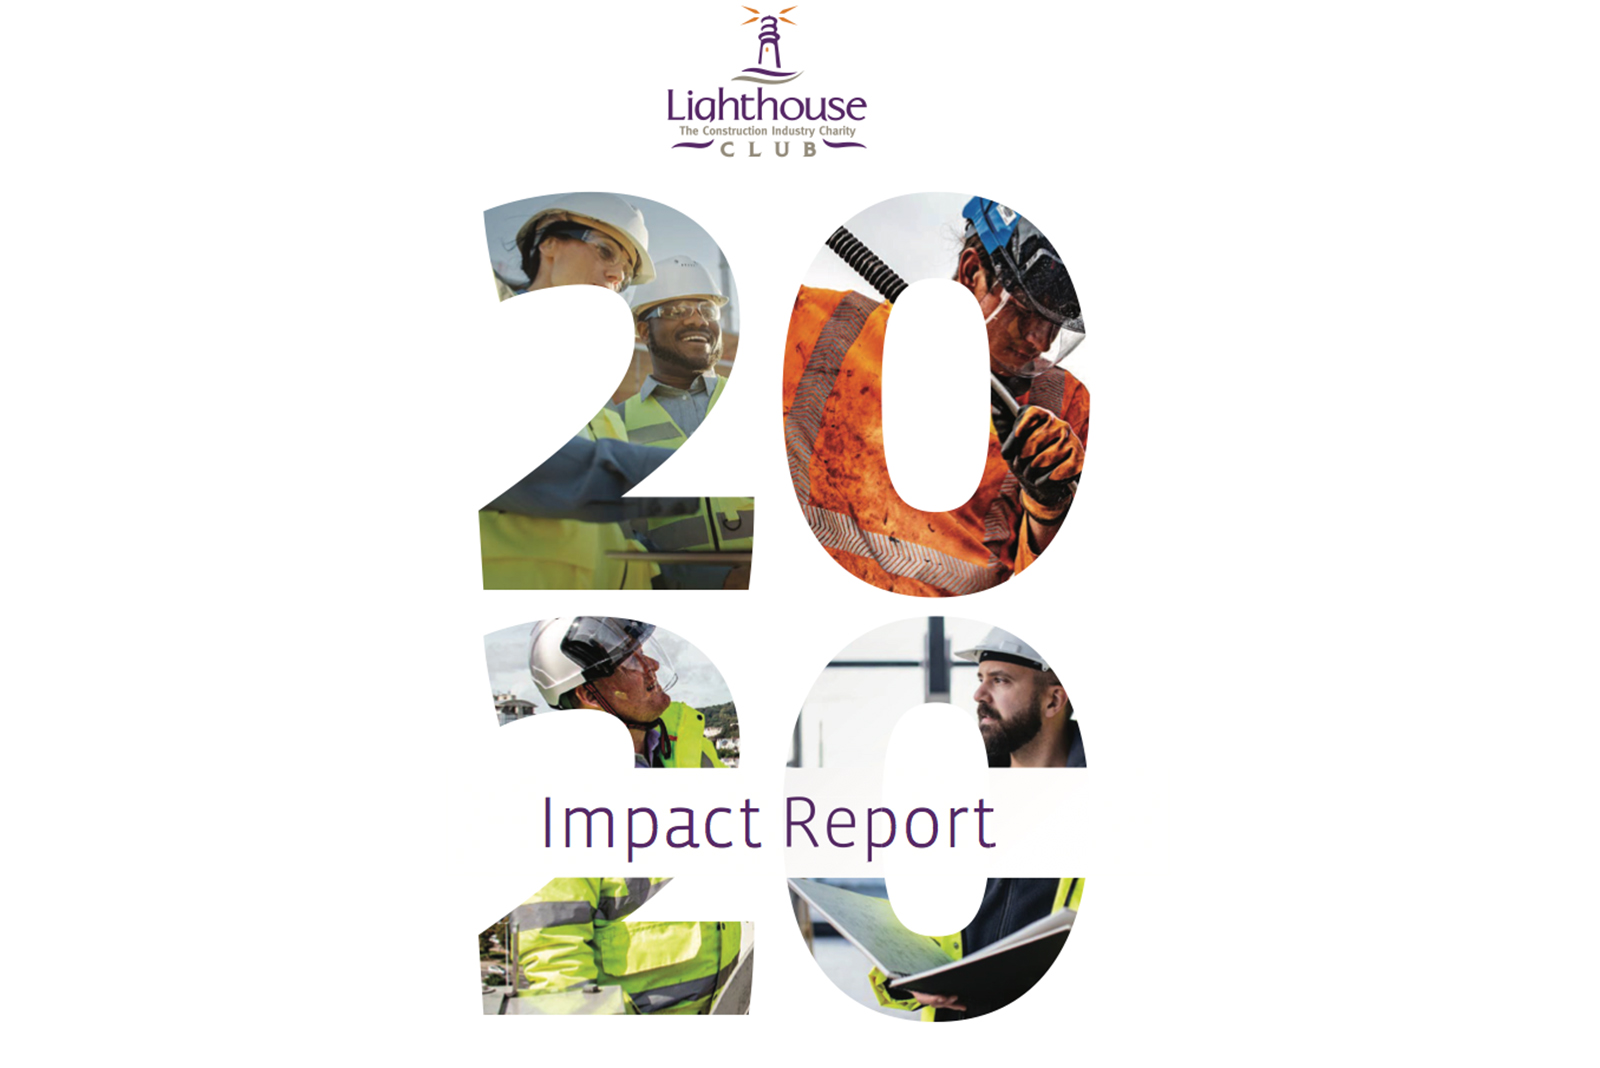 Lighthouse Construction Industry Charity 2020 Impact Report demonstrates vital support for Construction Community